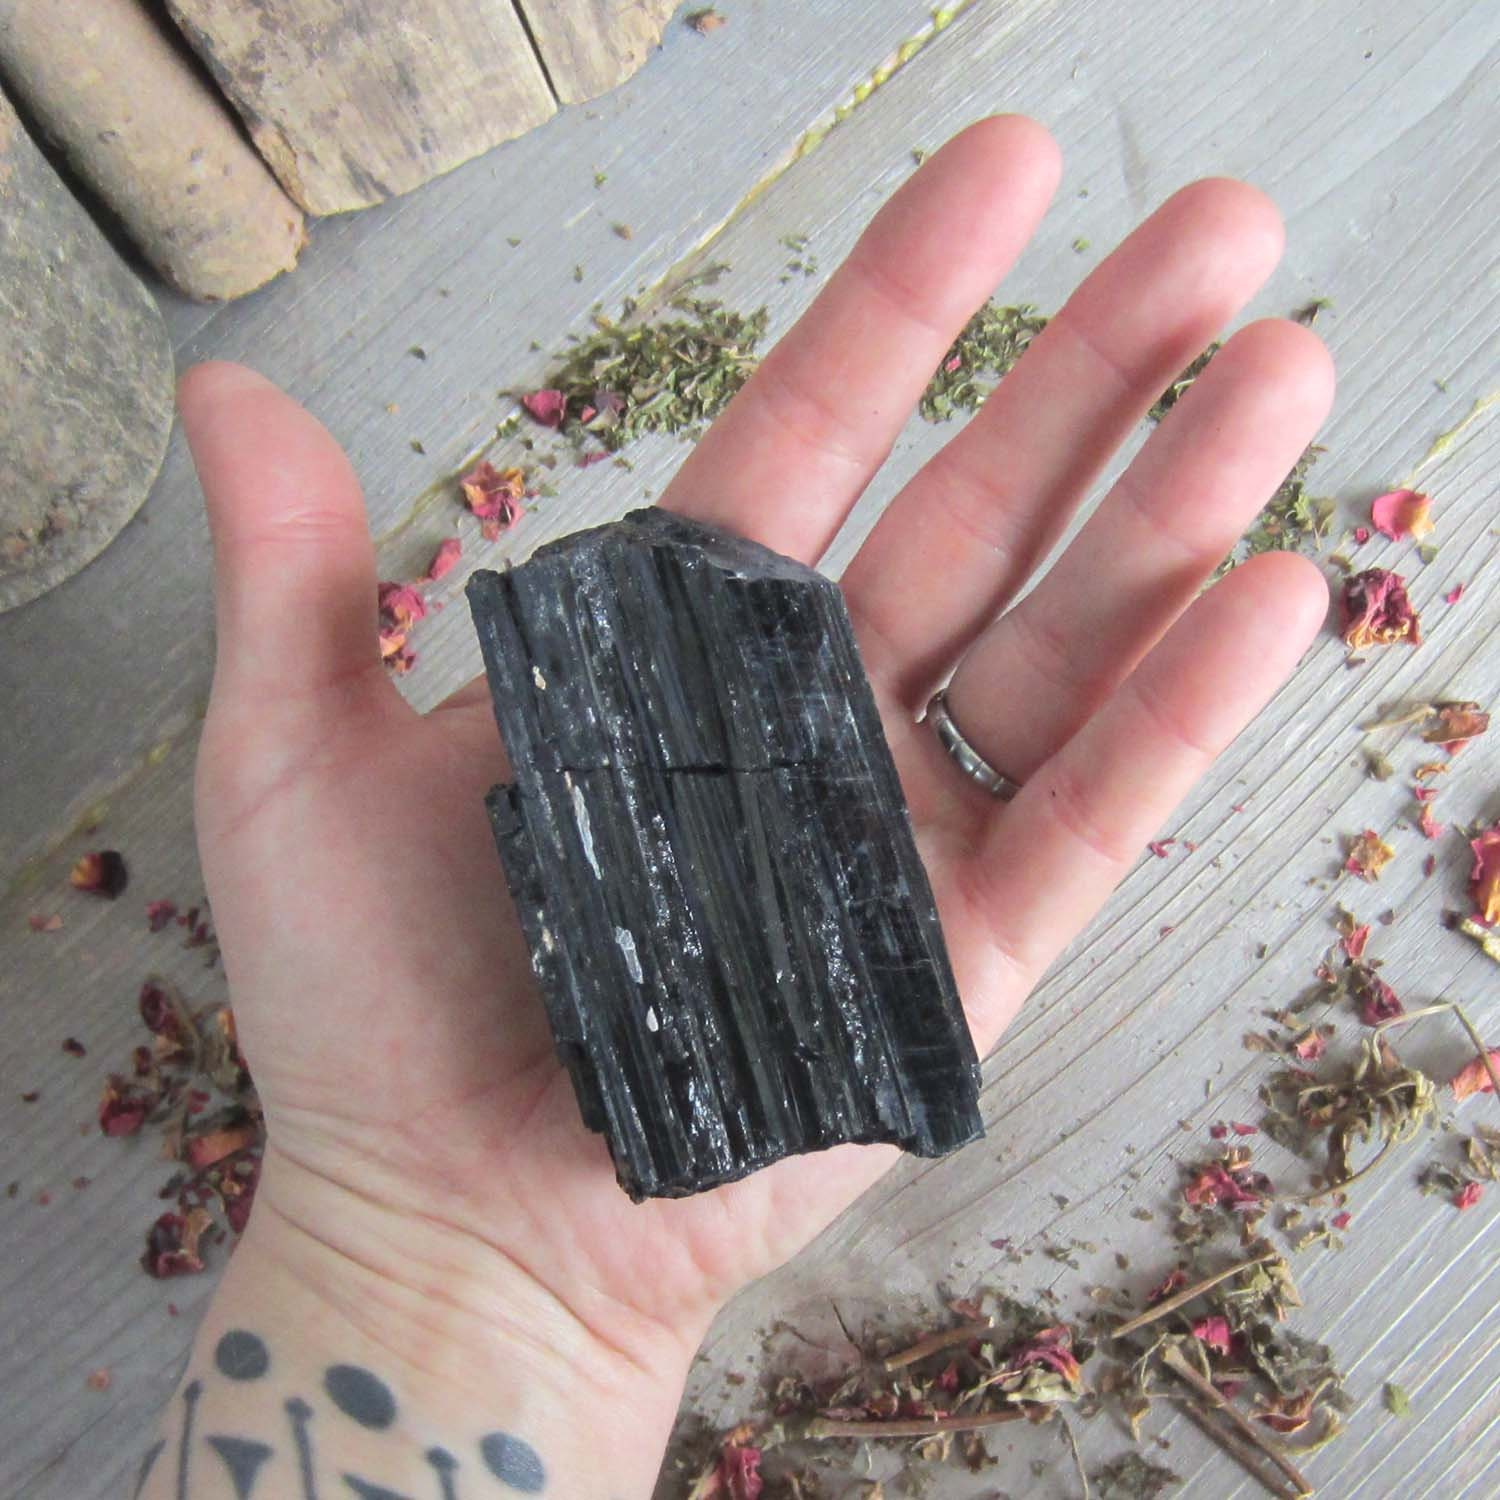 Large Rough Black tourmaline - meditation crystals witchcraft supplies  wicca pagan wiccan occult crystal set